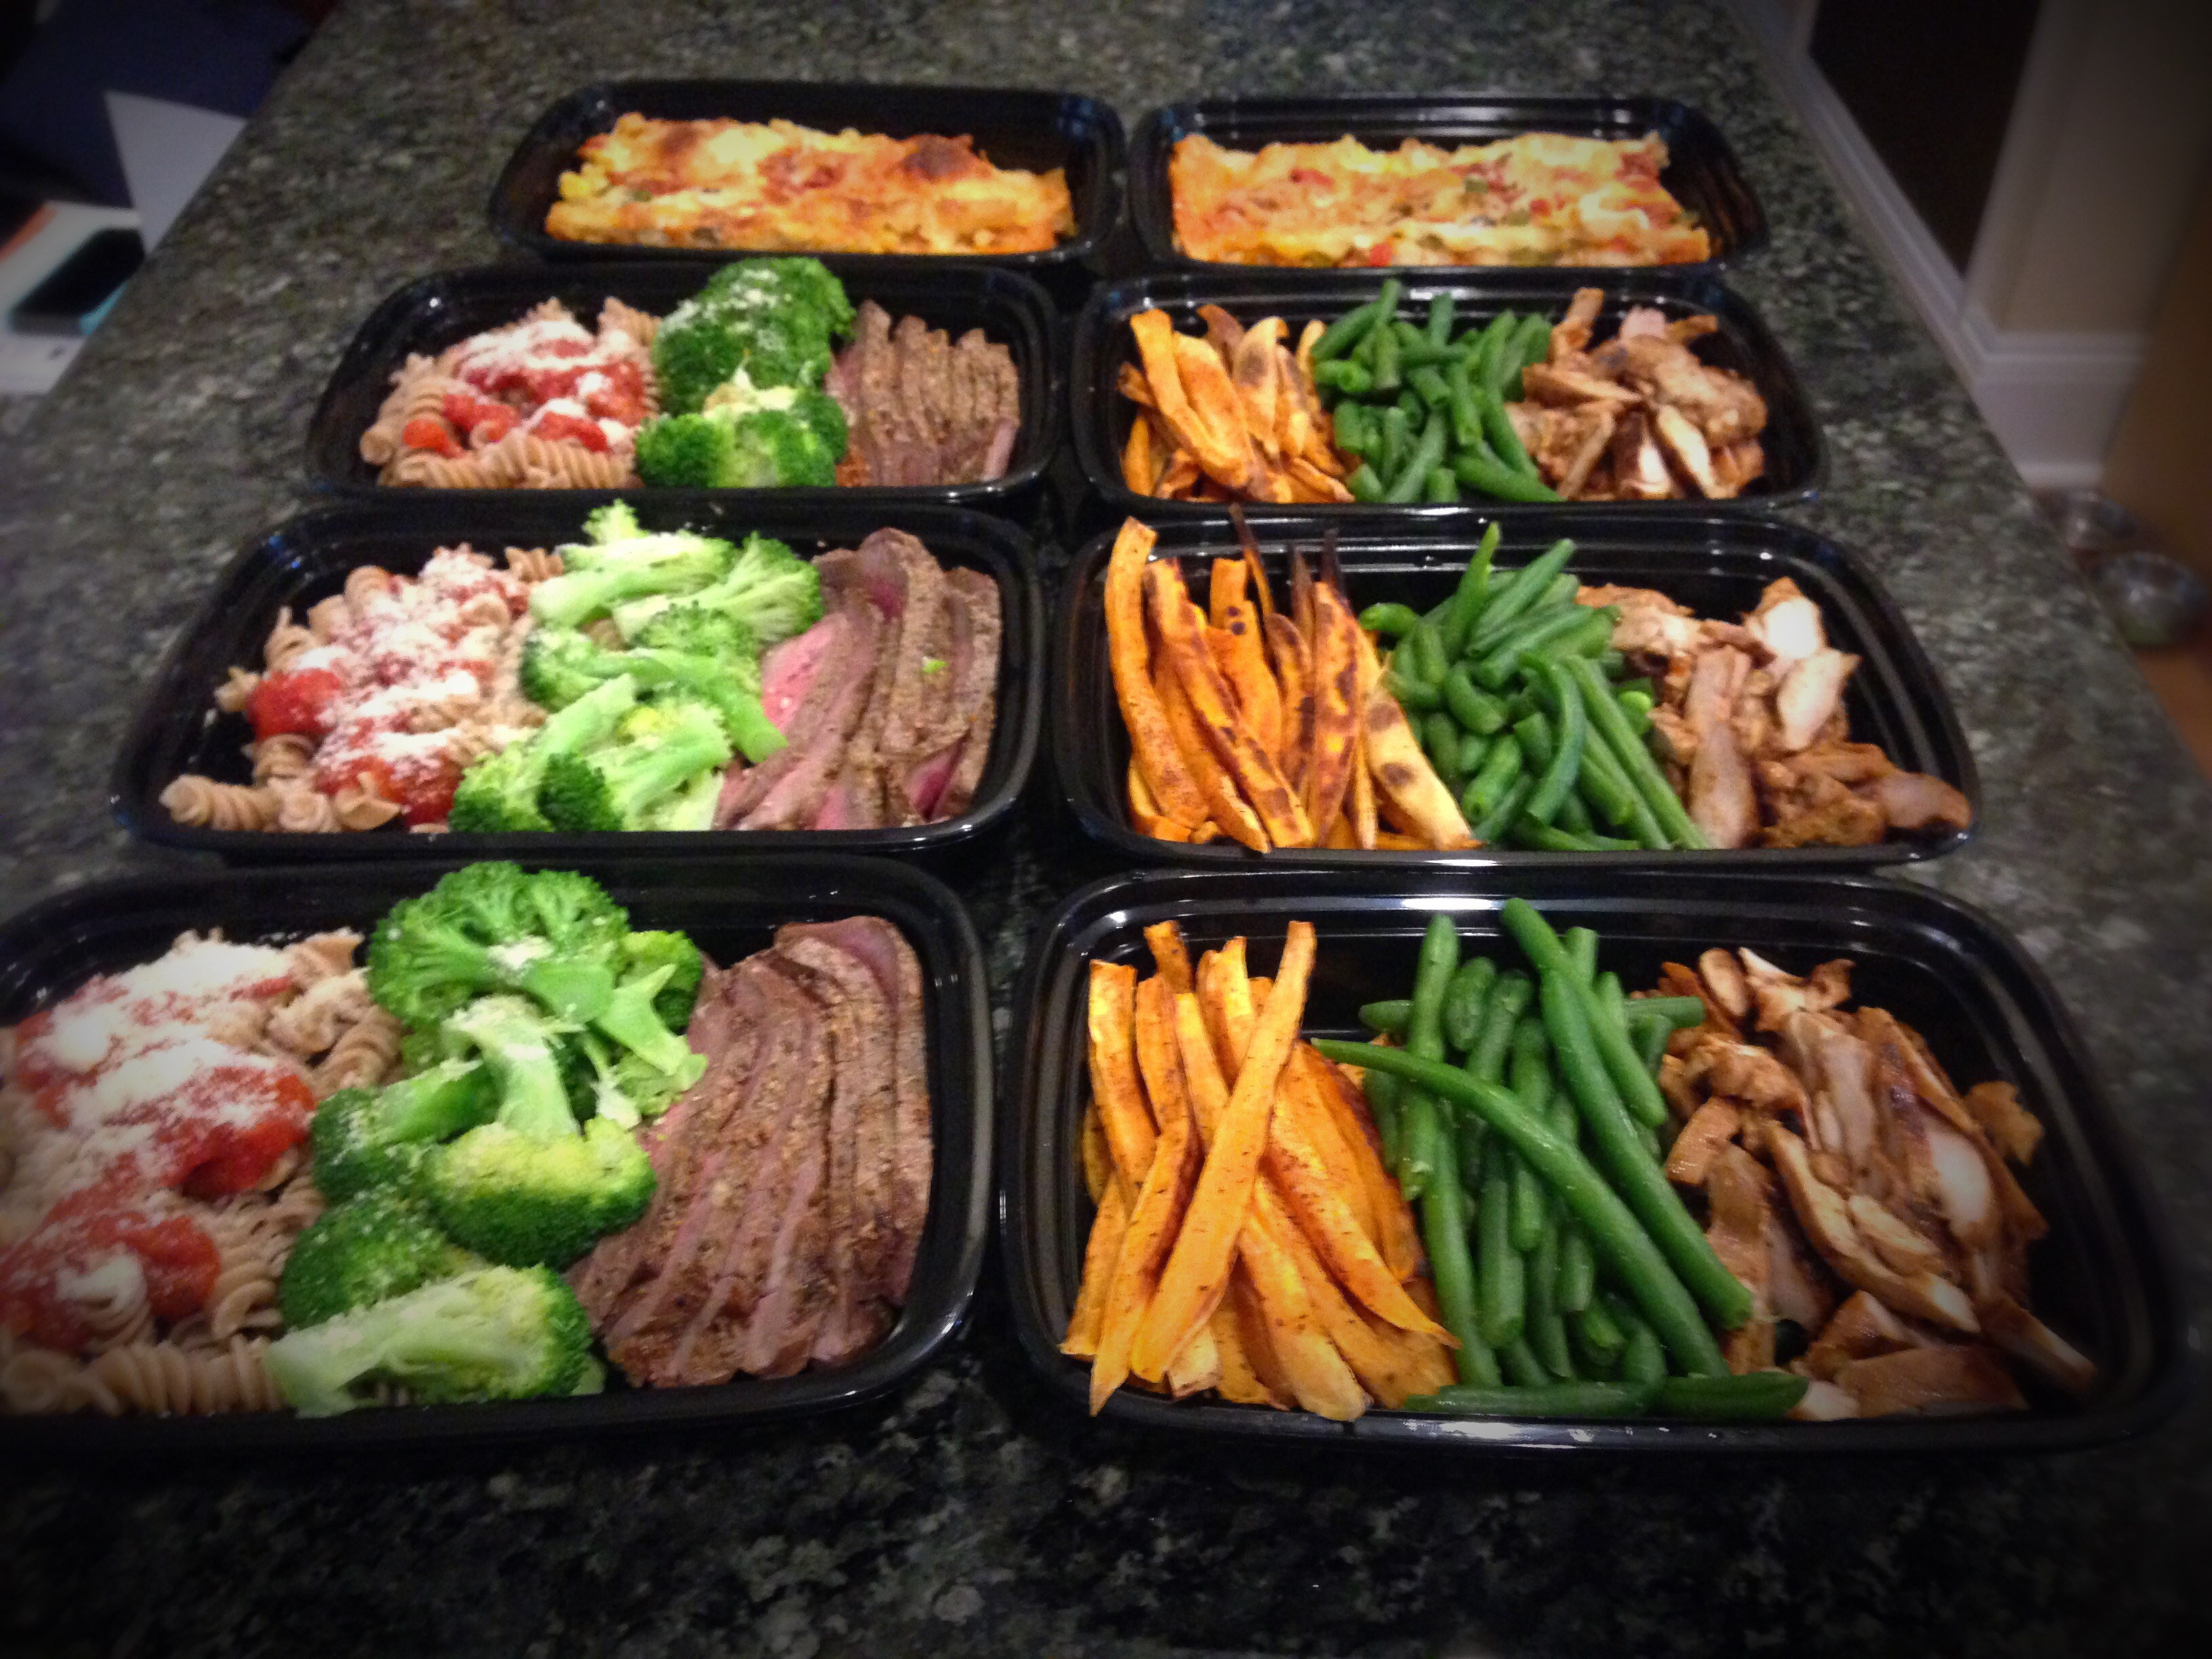 Meal Preparation Services